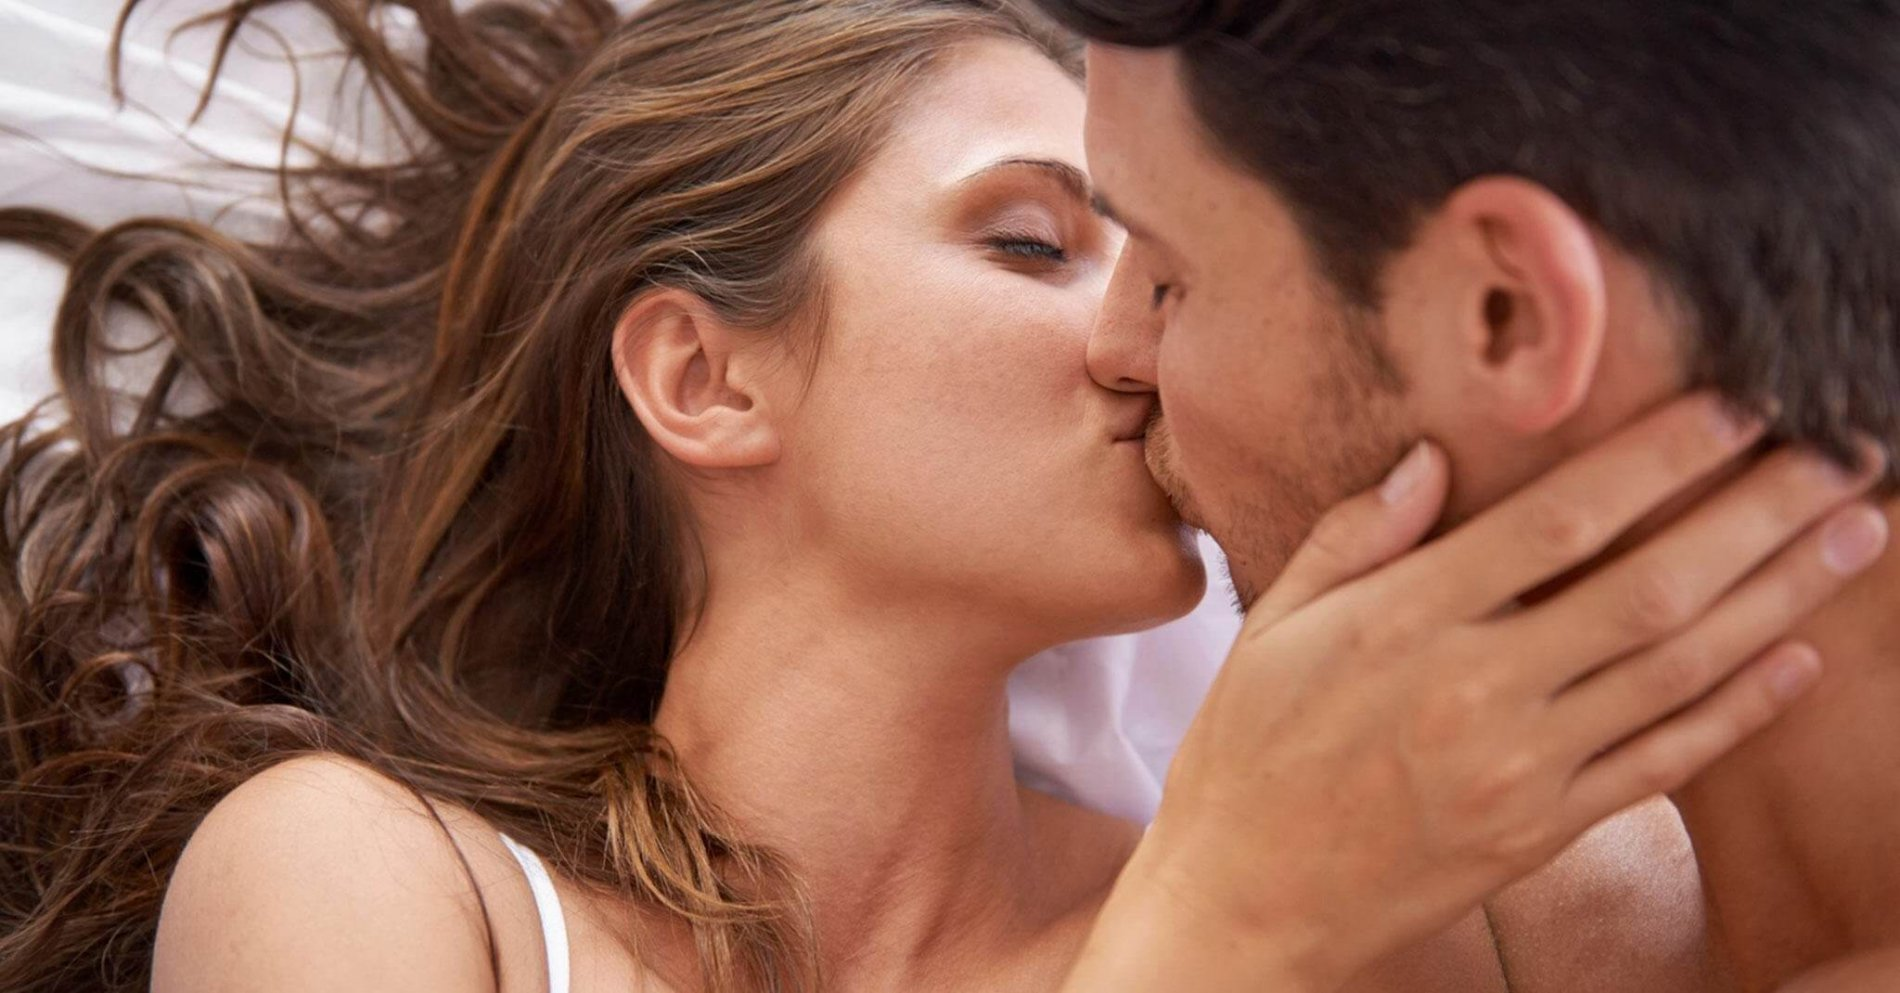 People who cheat on their partners reveal what caused them to stray